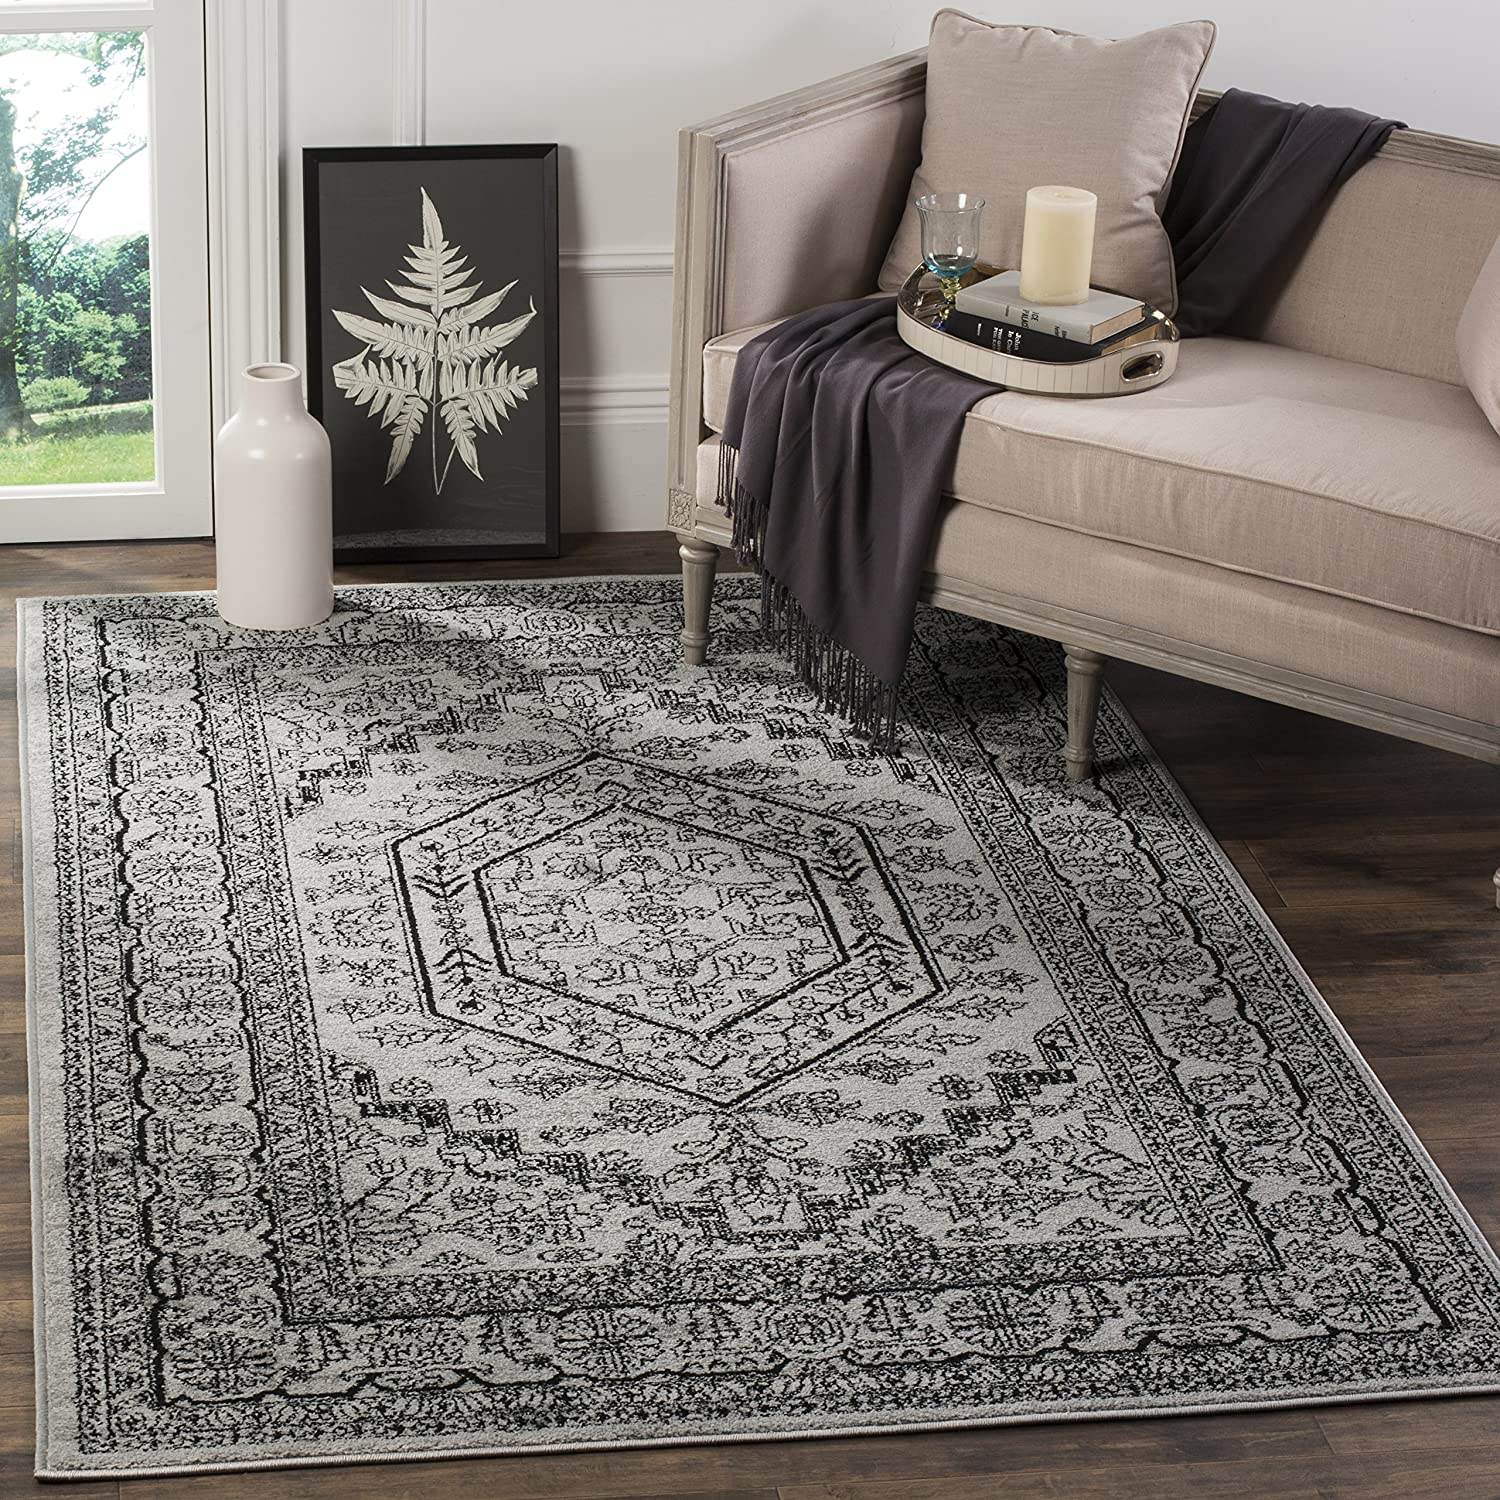 outdoor ft canada home inch mats the rug depot and categories square rugs en area p indoor floors x